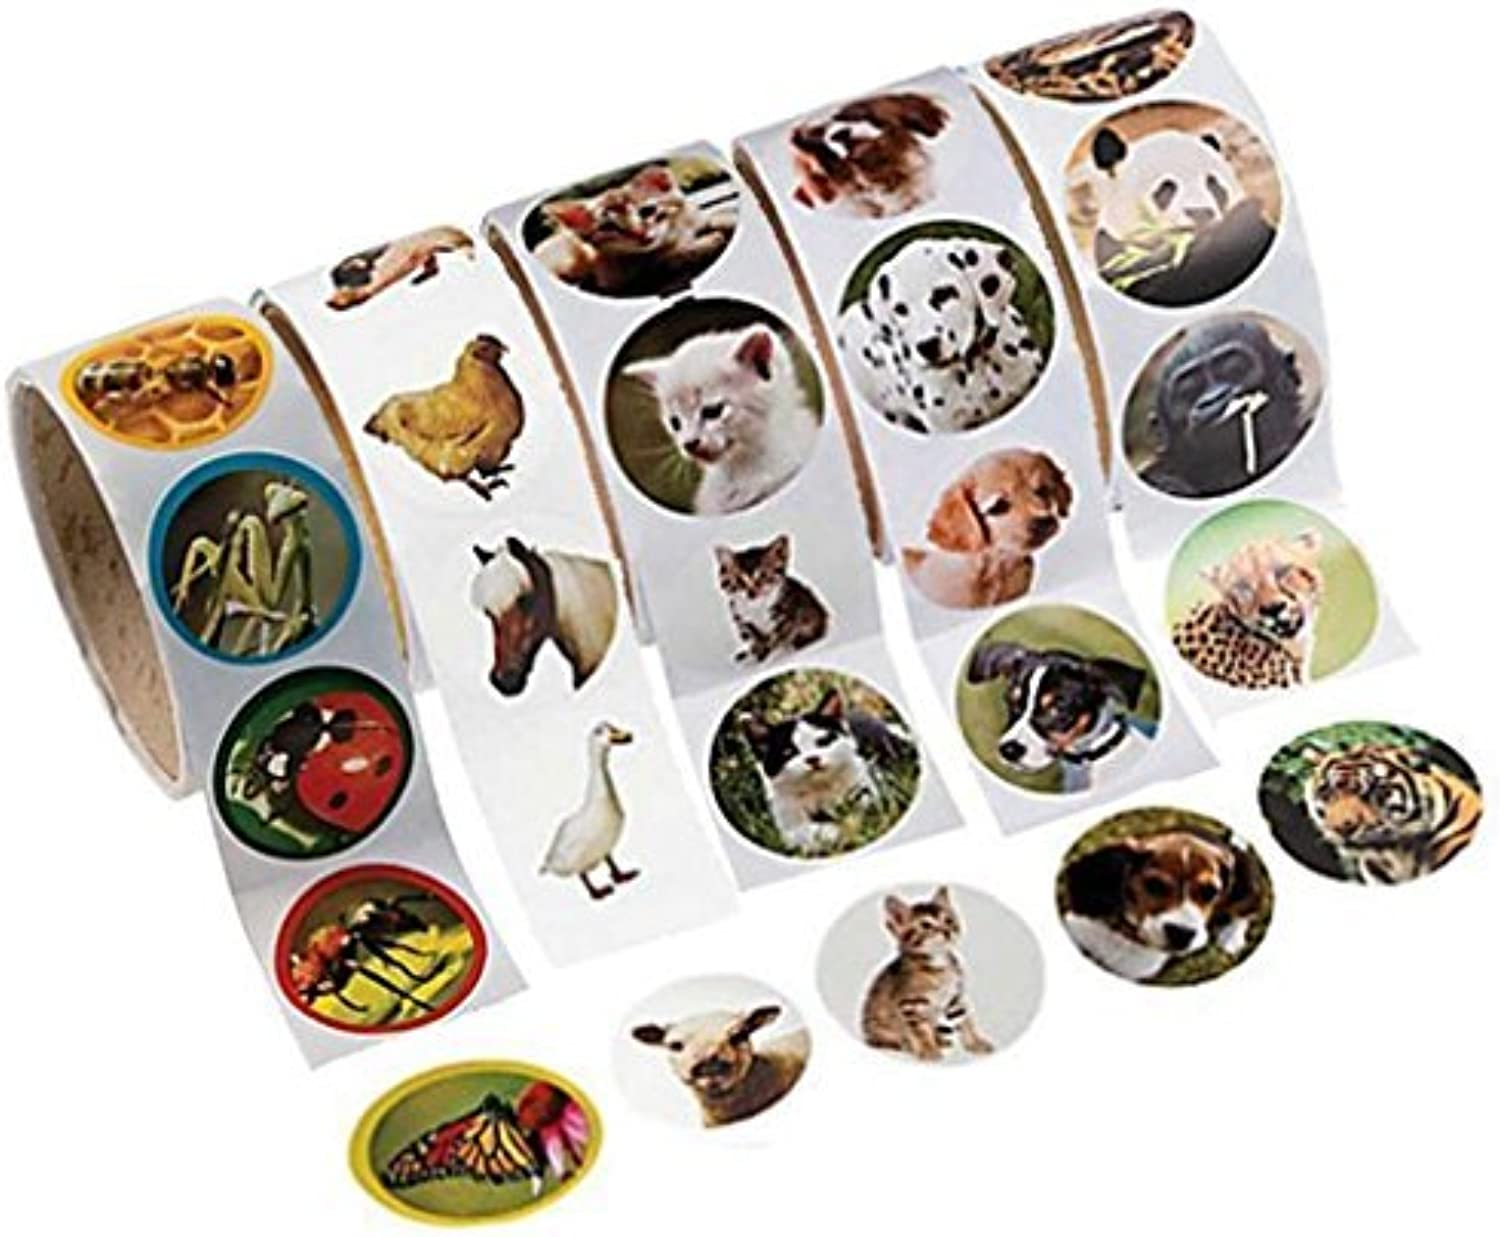 Animal Stickers  Cats, Dogs, Zoo Animals, Farm Animals and Insects by FX